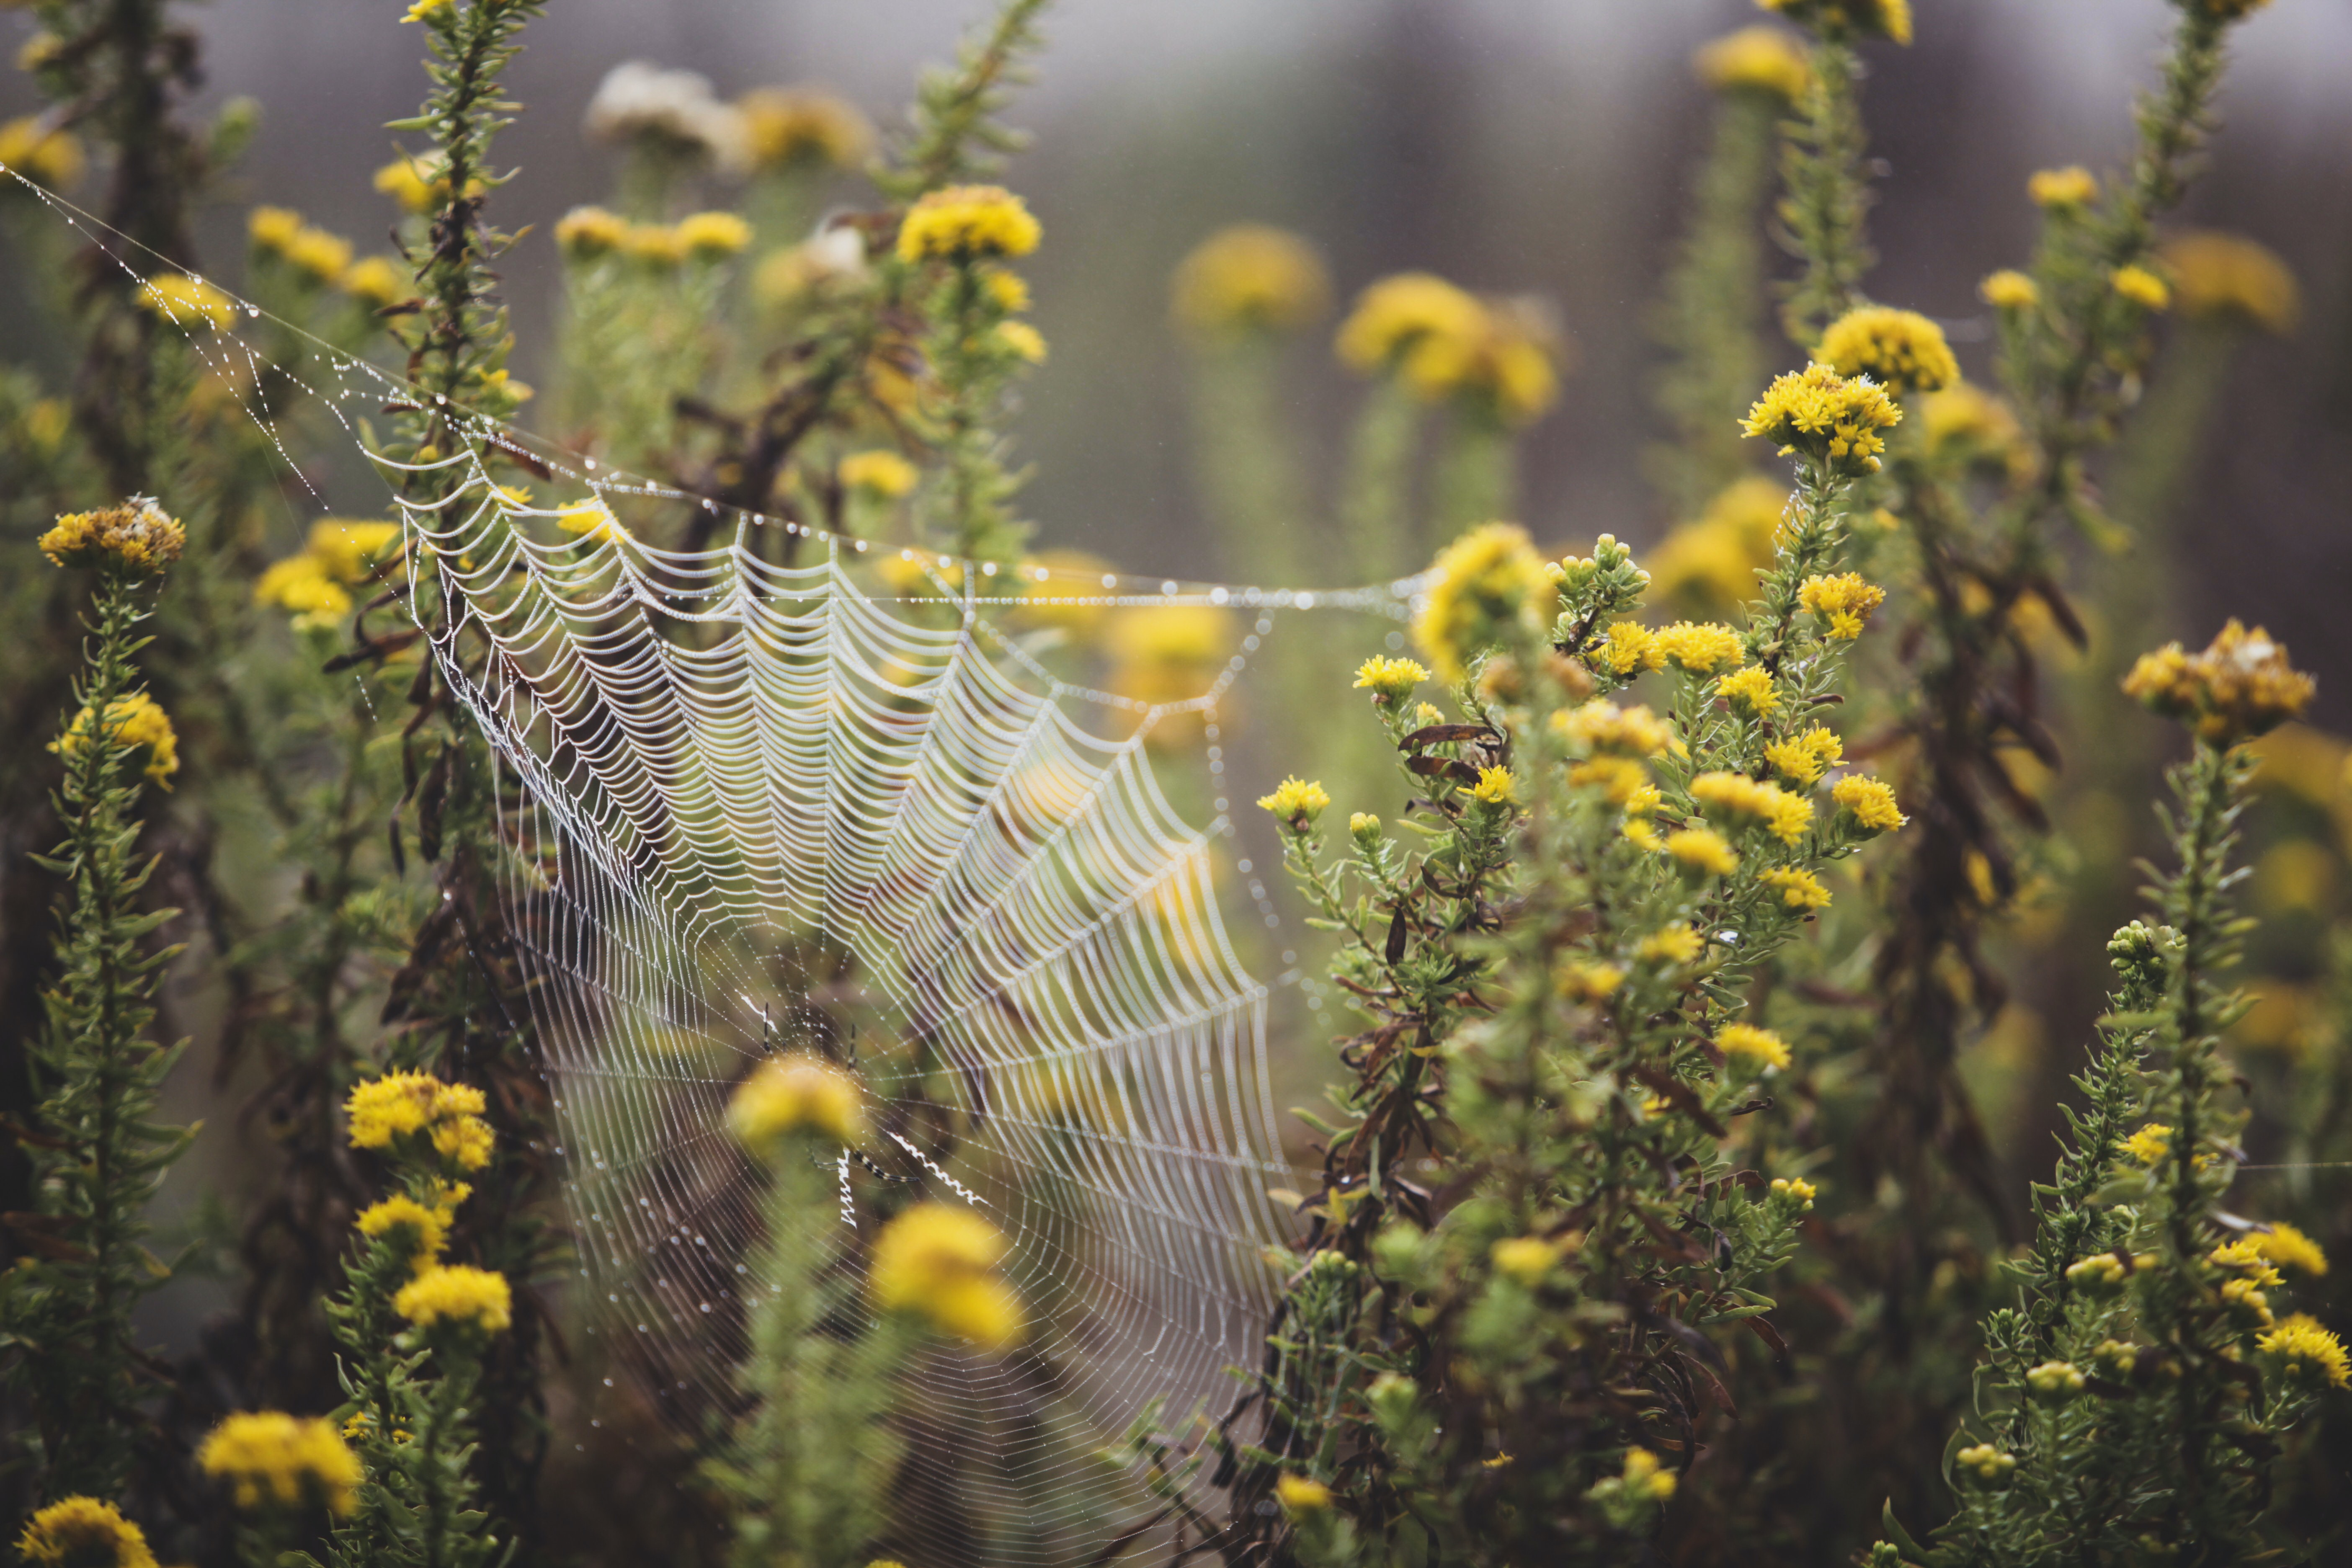 tilt shift photography of yellow flower plants with spider web